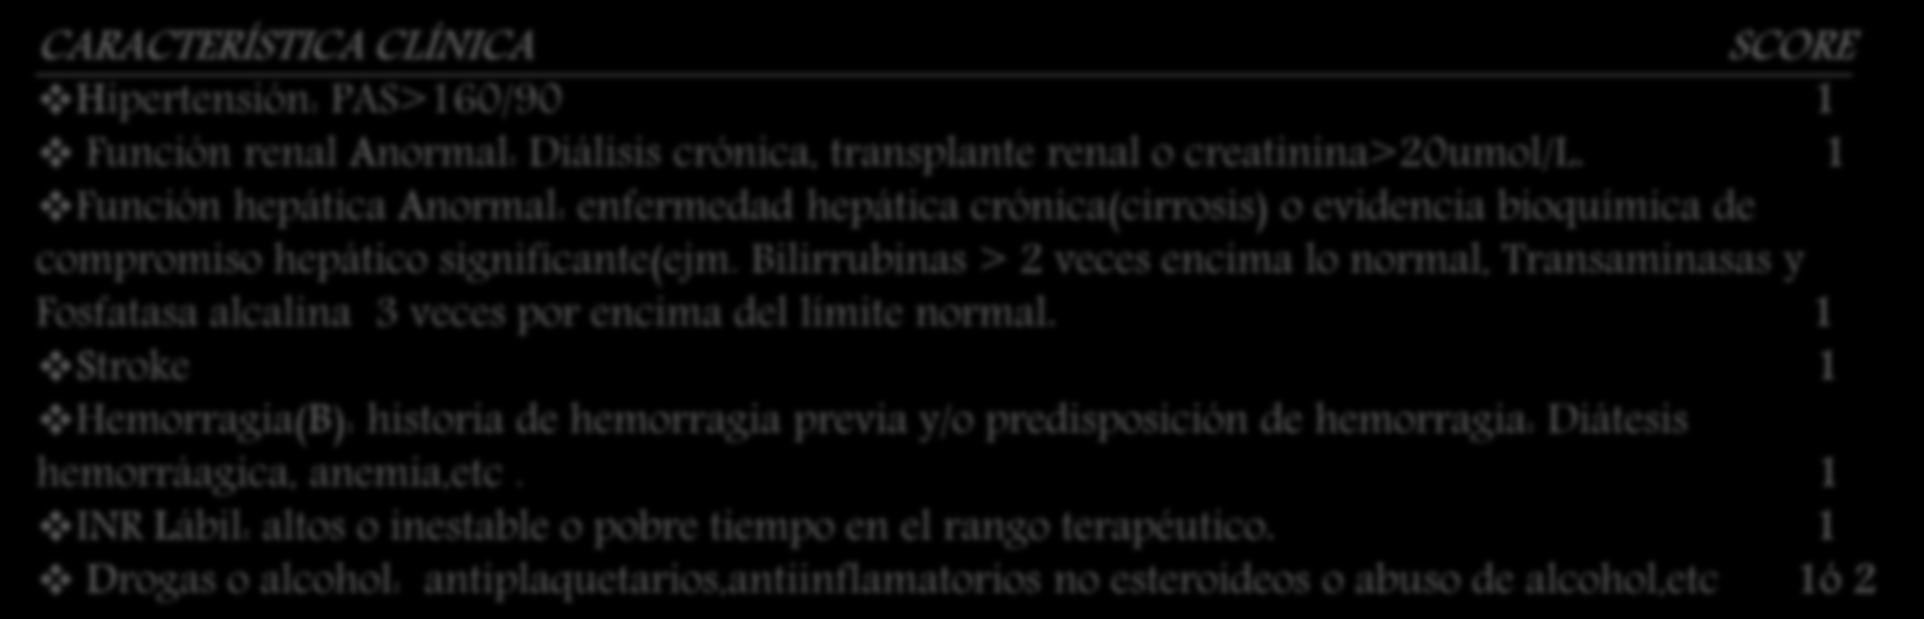 Varela L. En Principios de Geriatría y Gerontología. 2da edición.centro Editorial UPCH. 2011. Warfarin Pharmacology, Clinical Management, and Evaluation of Hemorrhagic Risk for the Elderly.